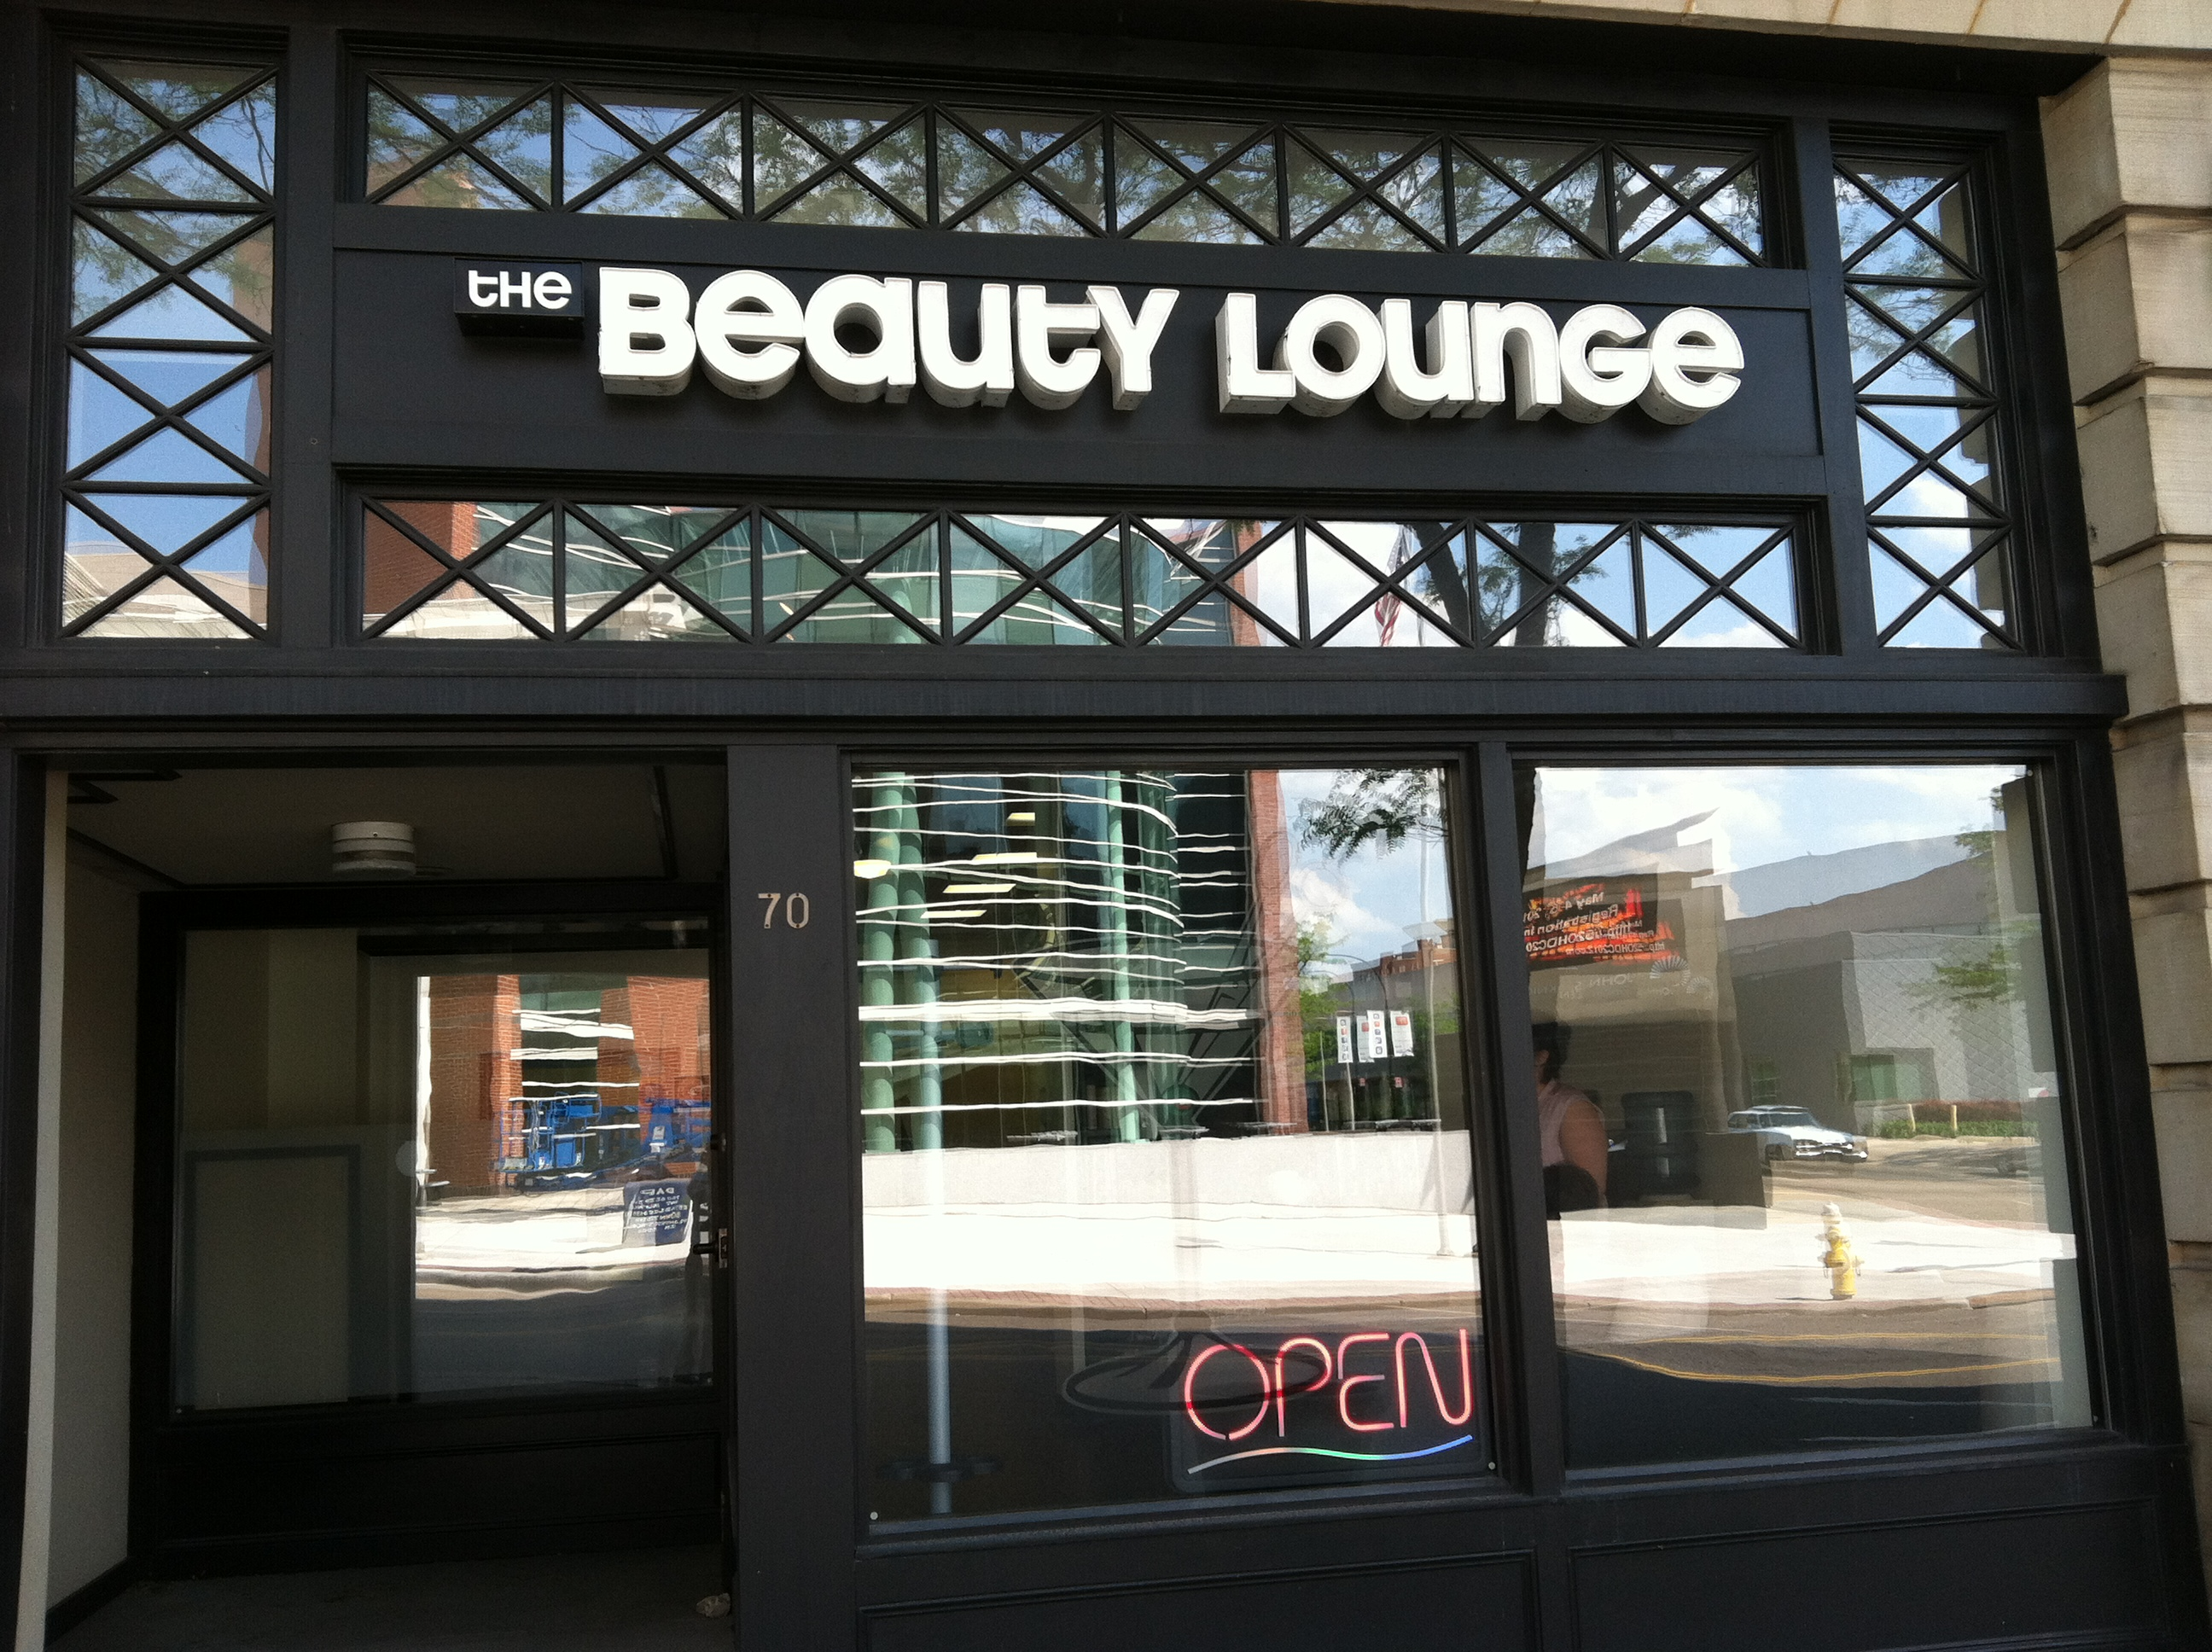 Welcome to The Beauty Lounge. We opened our doors in and have seen many guests leave happy and come back for our outstanding service. In fact, walking into our salon is like coming home again.